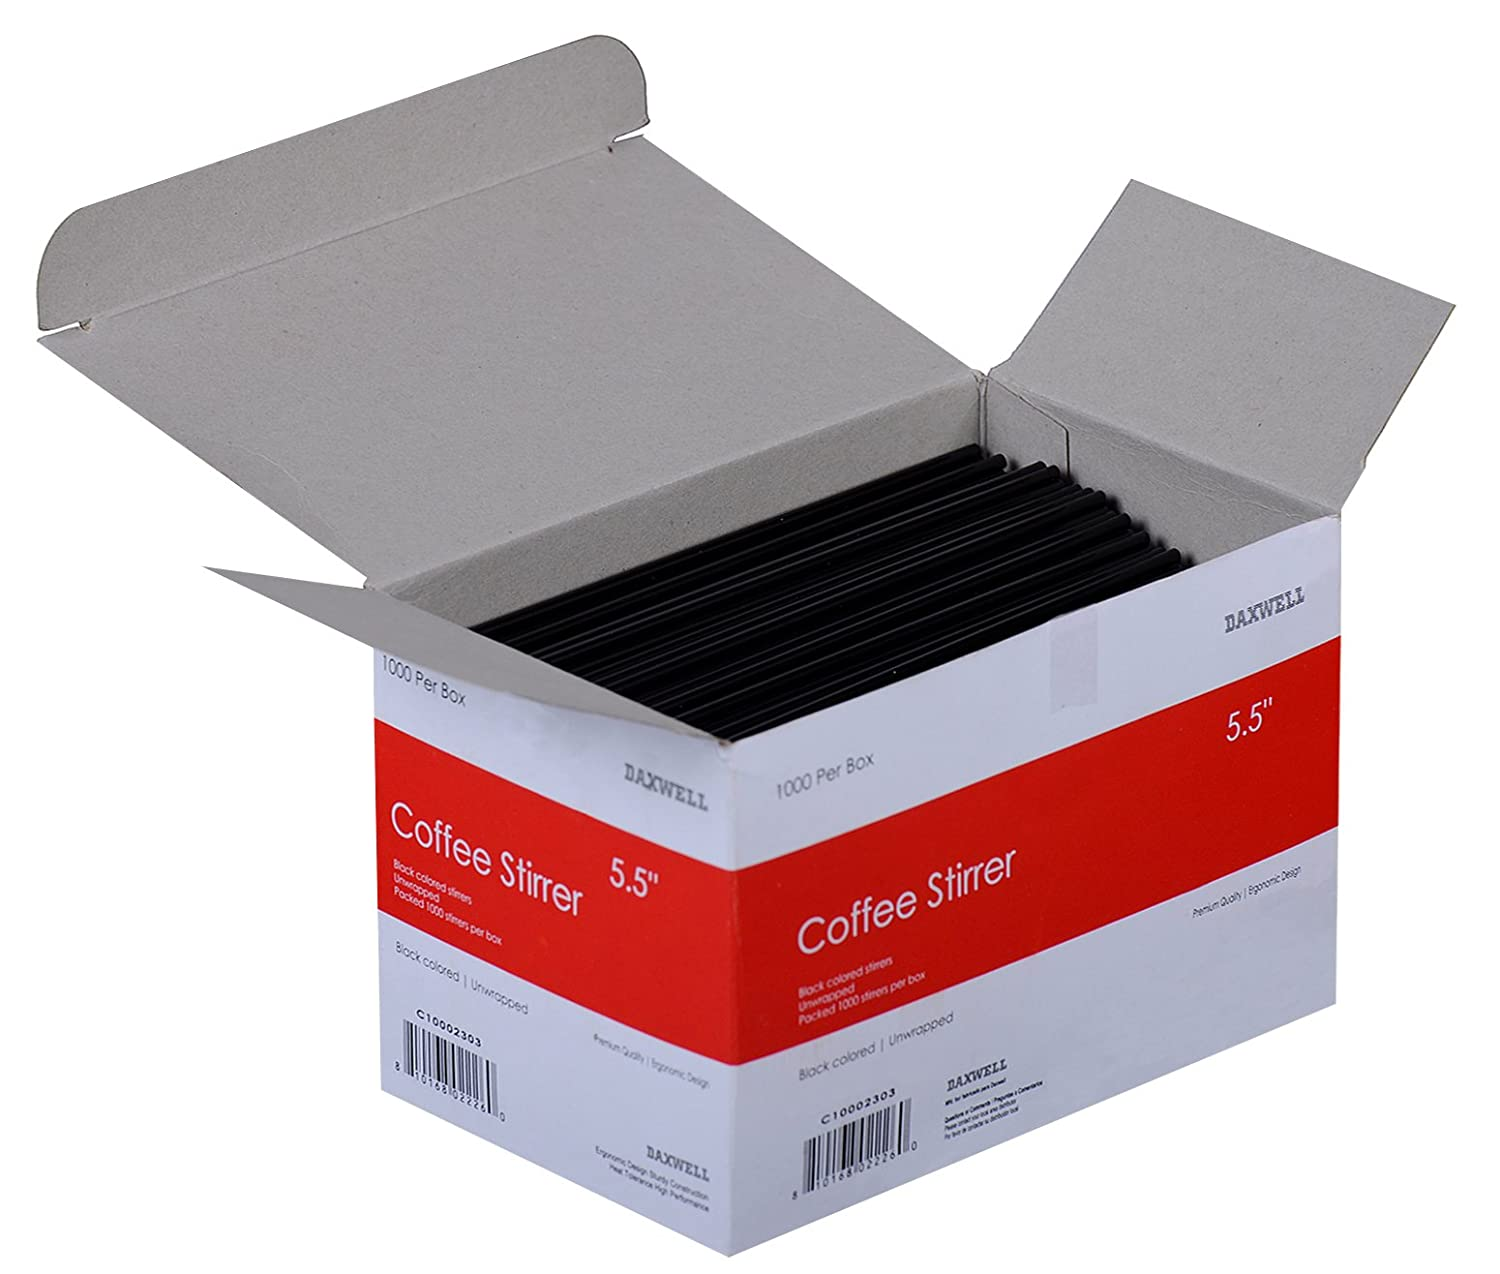 10 Boxes of 1,000 Black C10002303 Daxwell 5.5 x 3mm Coffee Stirrer